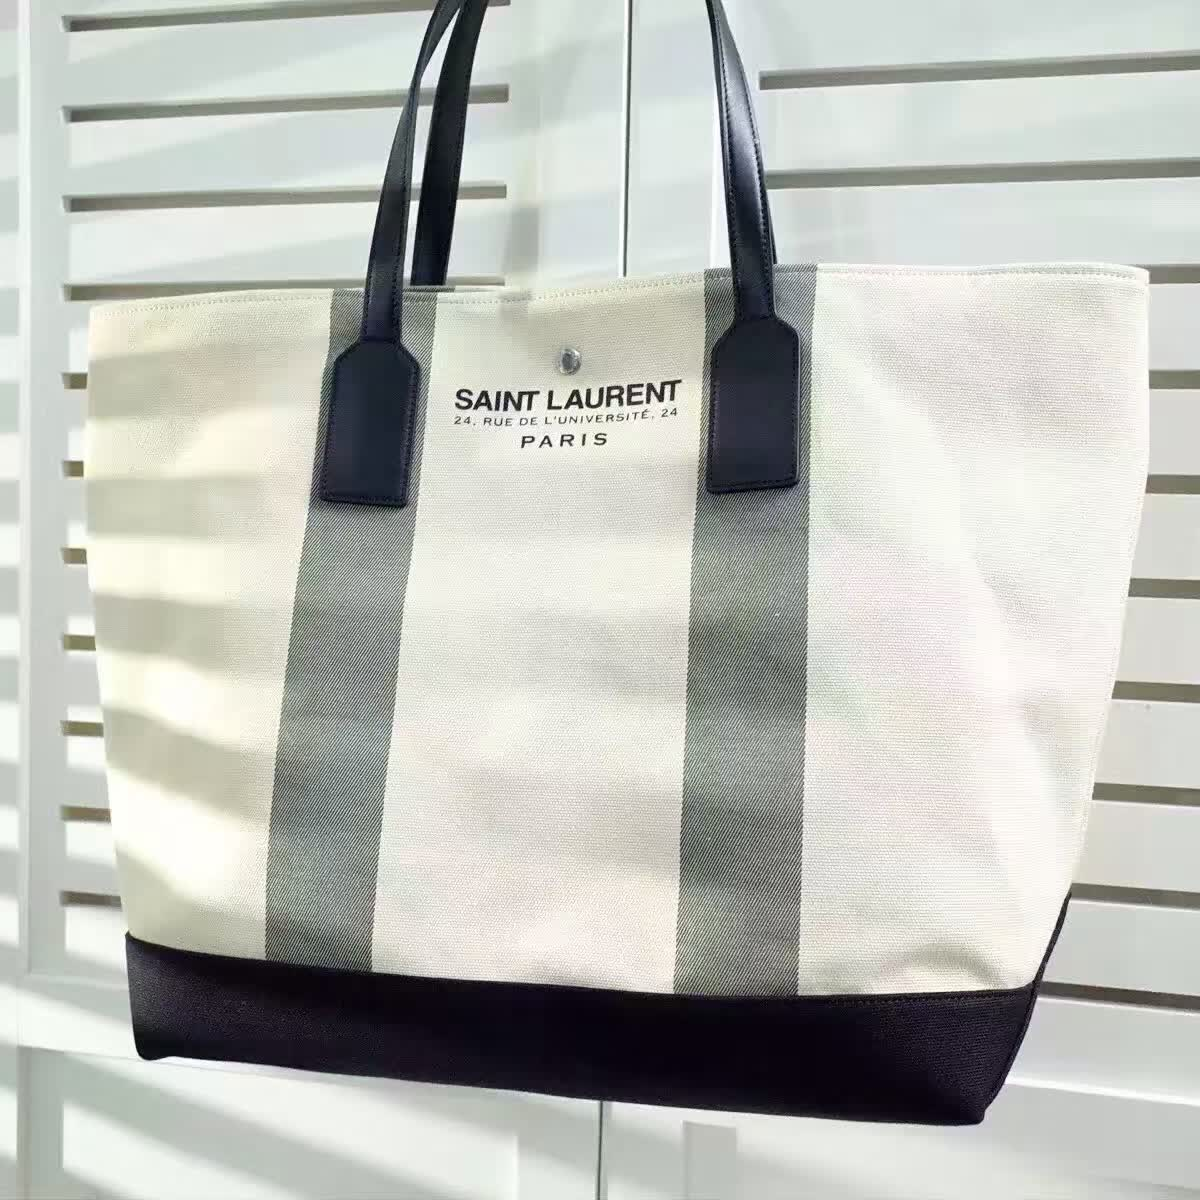 Limited Edition!2016 Cheap YSL Out Sale with Free Shipping-Saint Laurent Beach Shopping East/West Tote Bag in Light Beige and Khaki Canvas and Black Leather - Click Image to Close